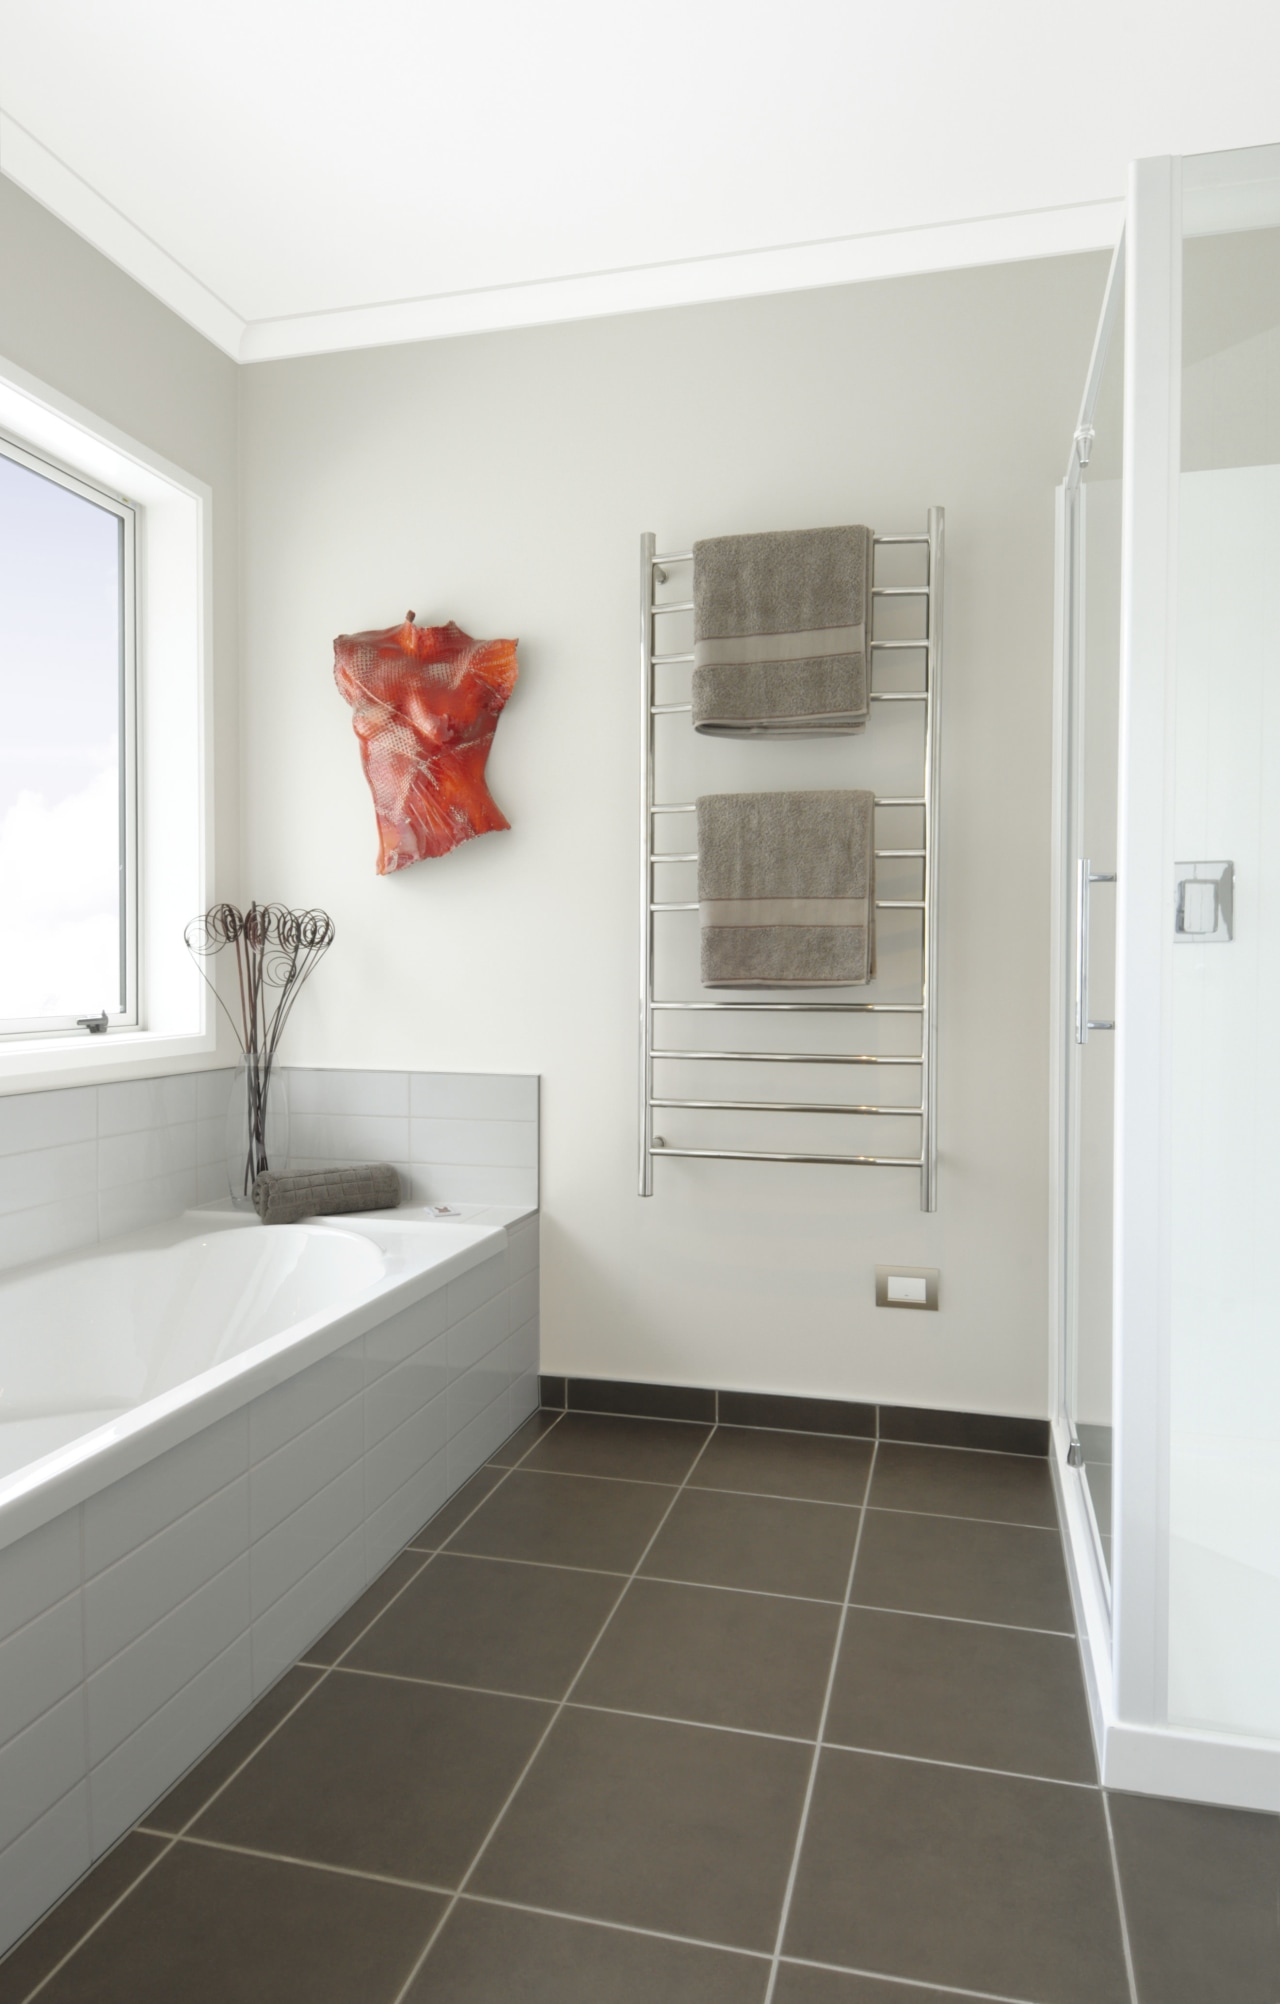 This show home was designed by Platinum Homes bathroom, floor, flooring, home, interior design, plumbing fixture, real estate, room, tile, white, gray